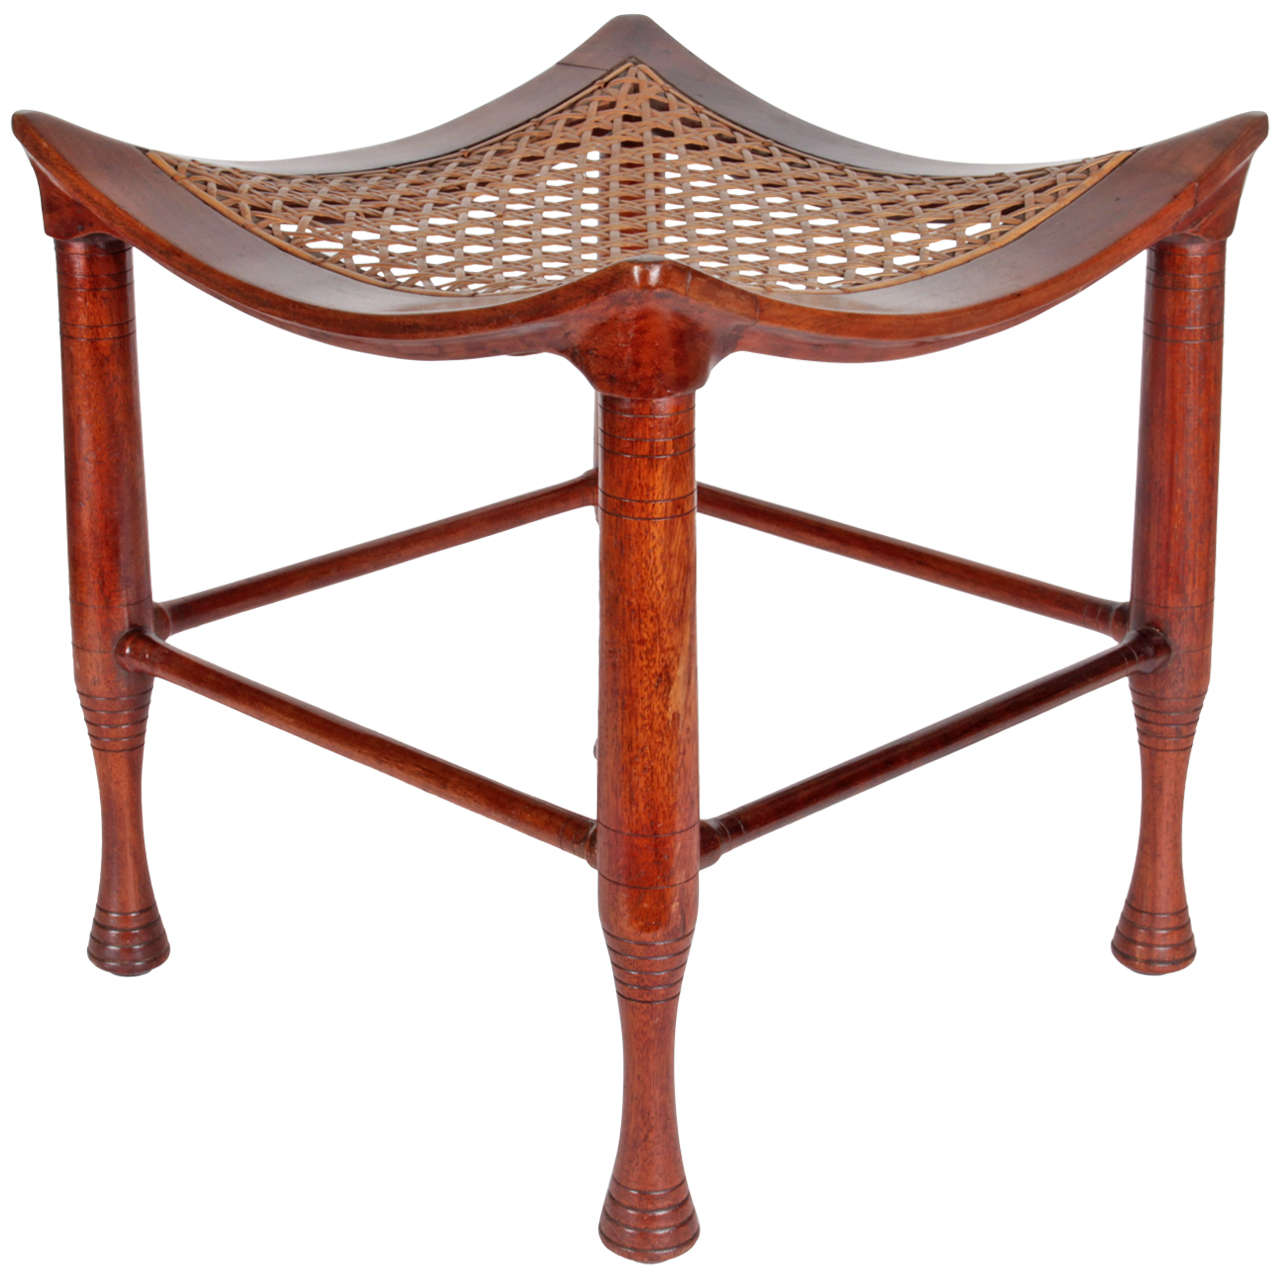 Ancient egyptian table - Leonard Wyburd Egyptian Revival Four Legged Mahogany Thebes Stool Circa